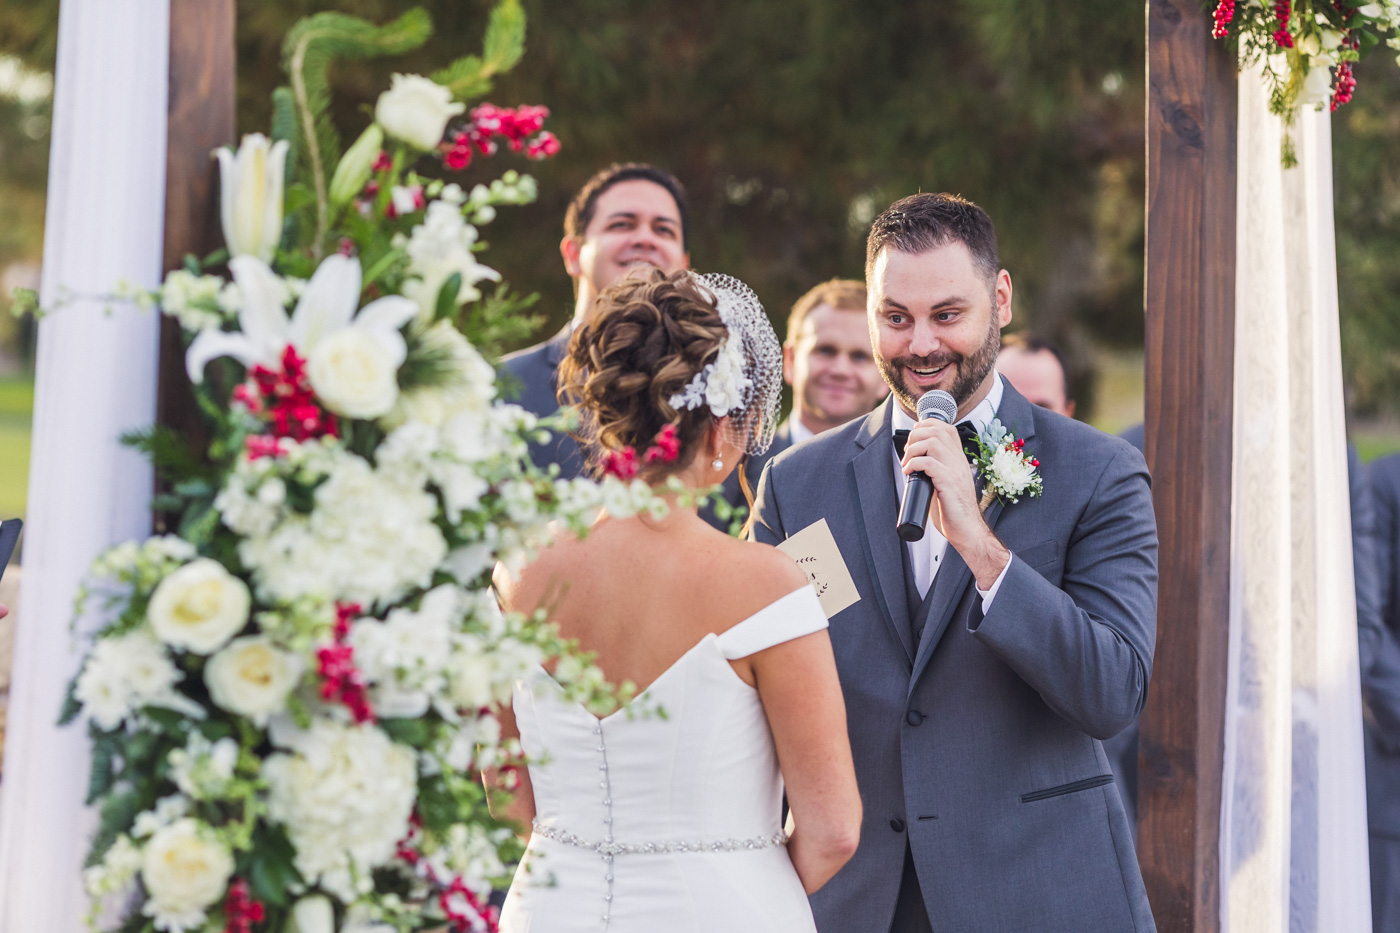 groom-gives-vows-at-wedding